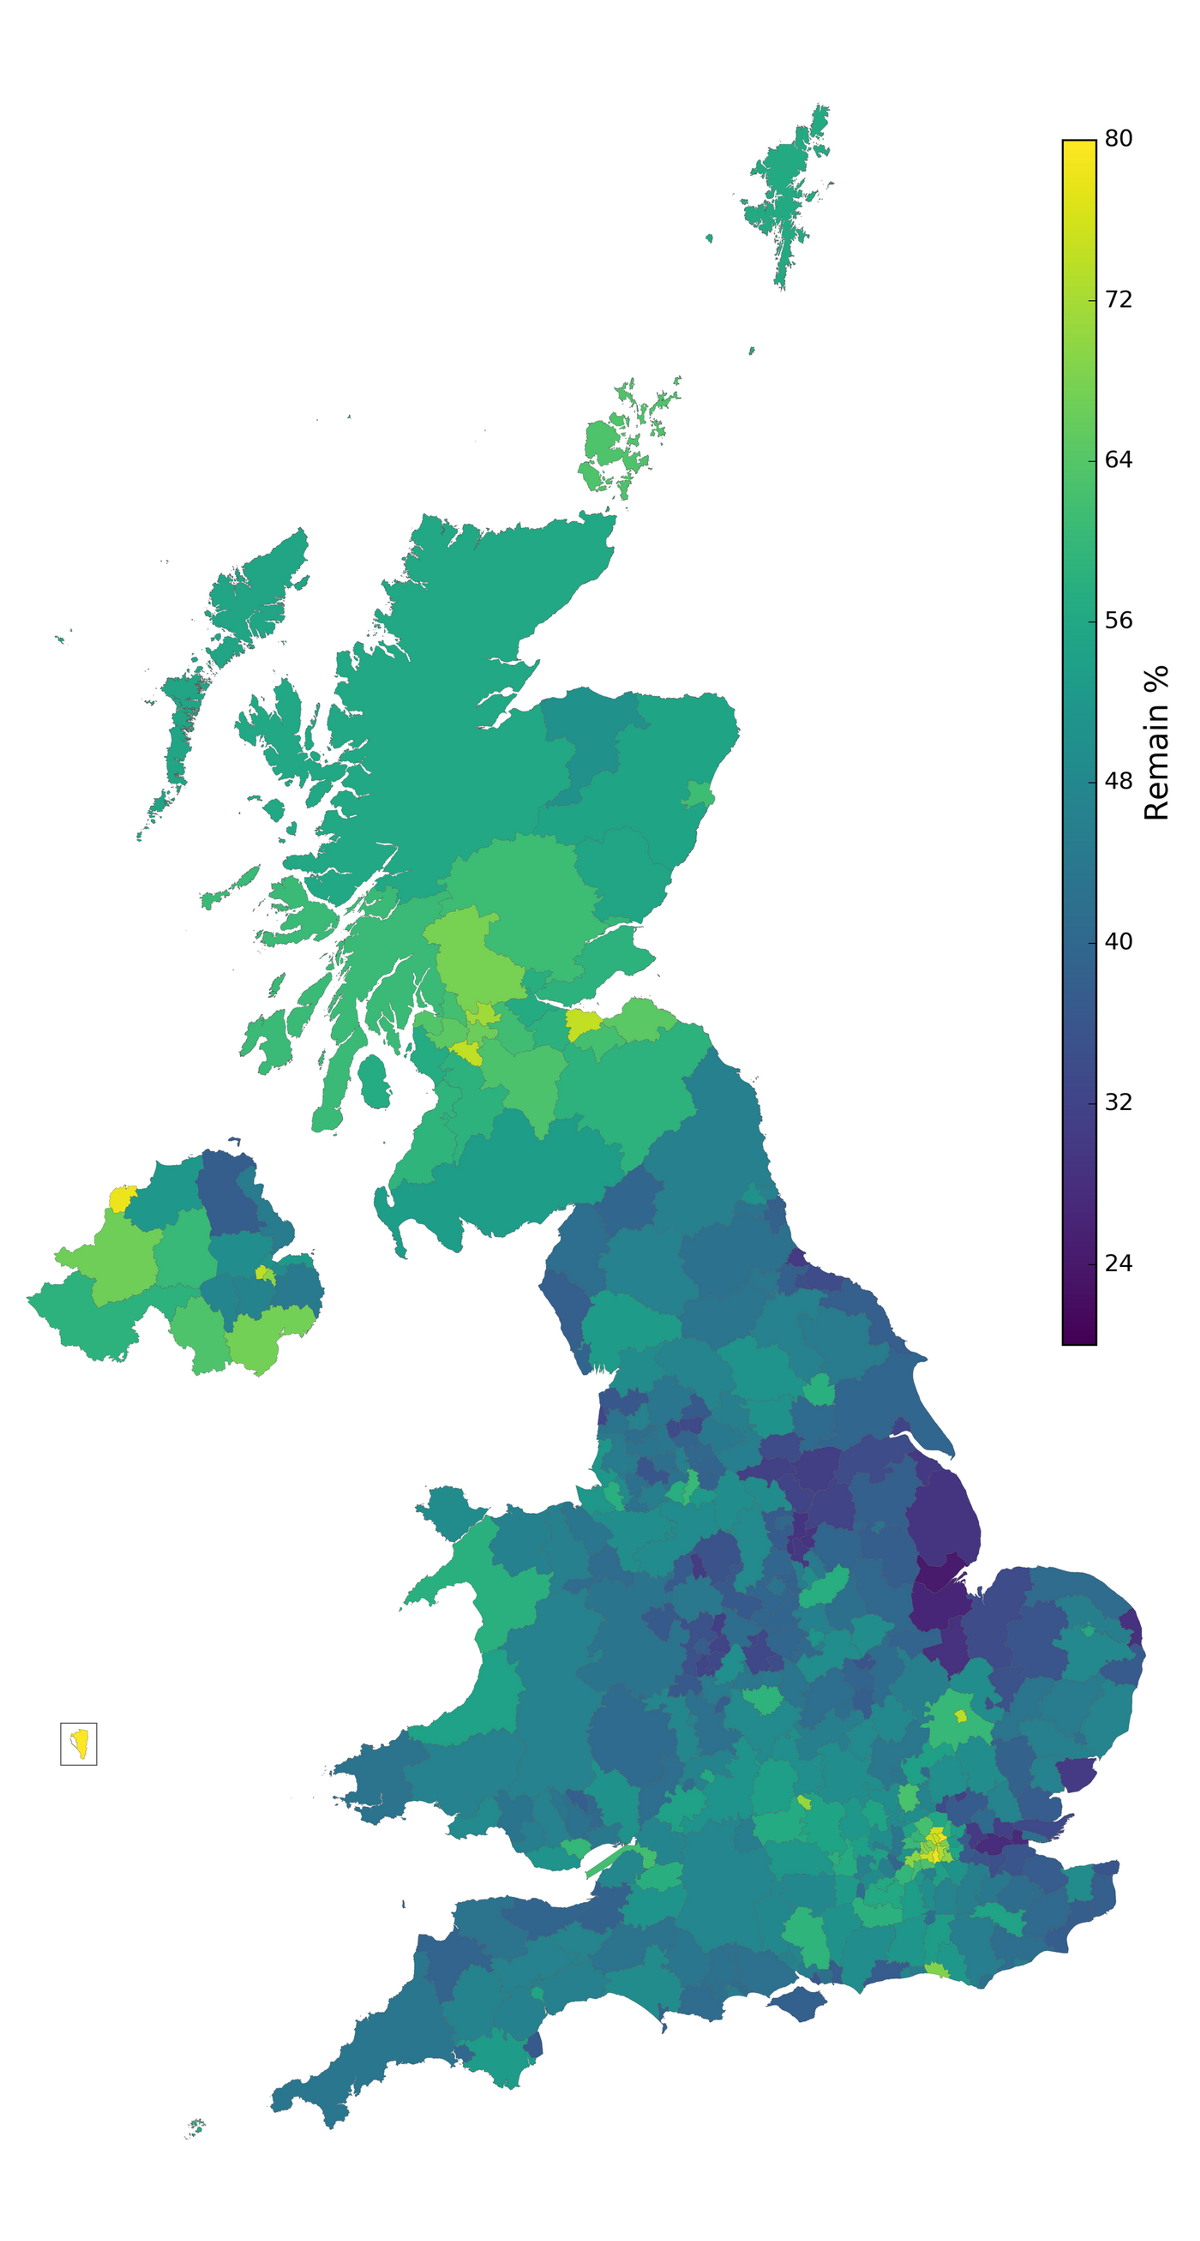 map 1 brexit results plotted using a continuous colourmap from 2080